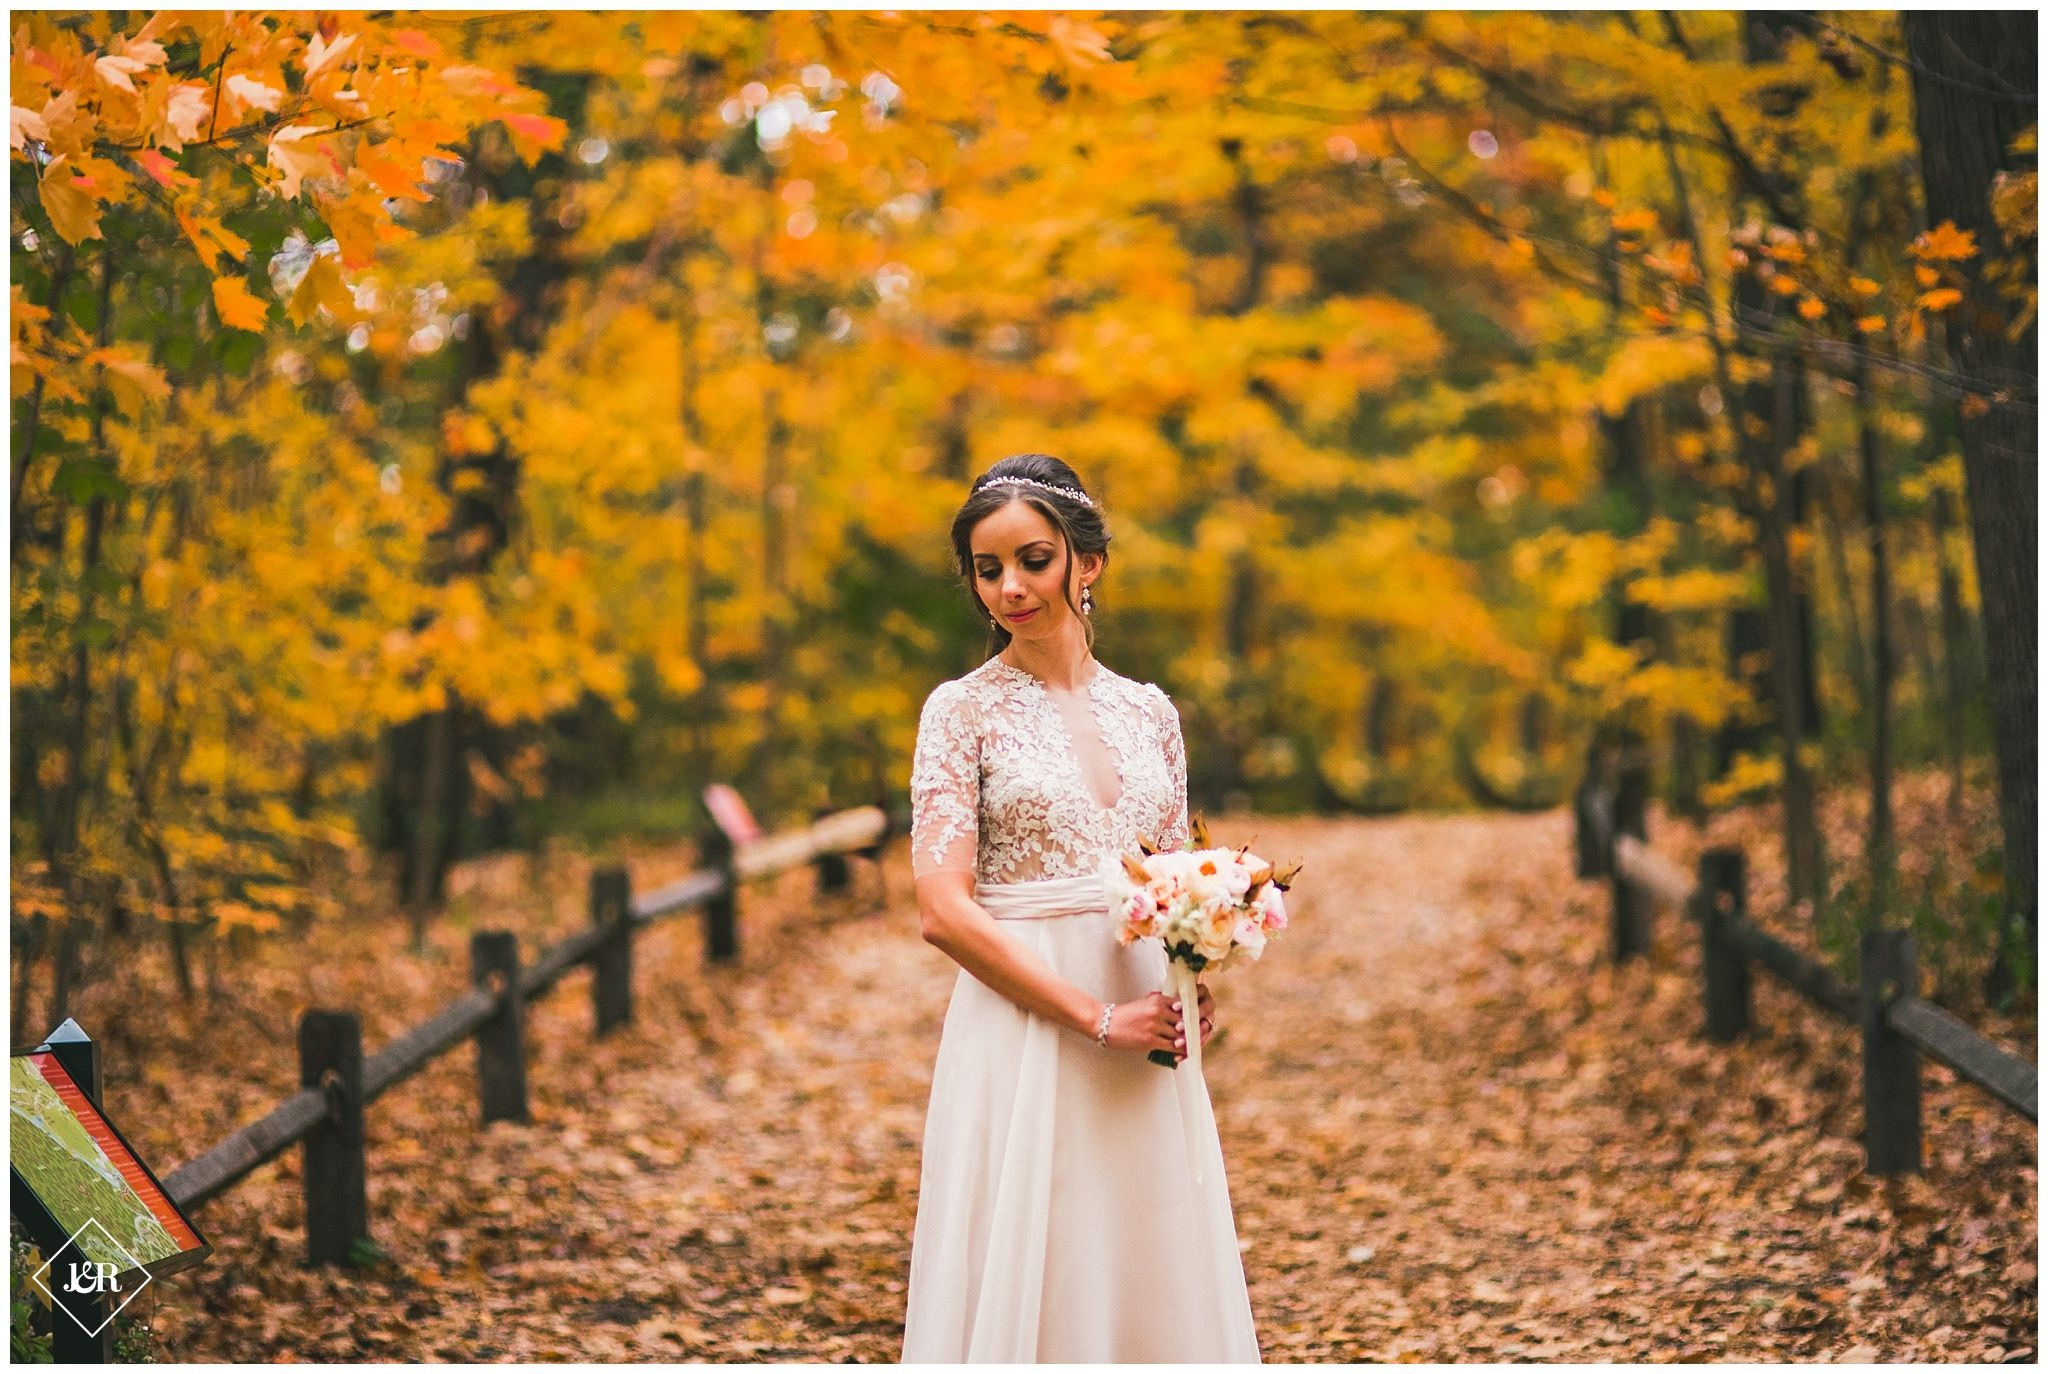 NY Botanical Garden Wedding | Wedding Portraits: Bride | Pinterest ...